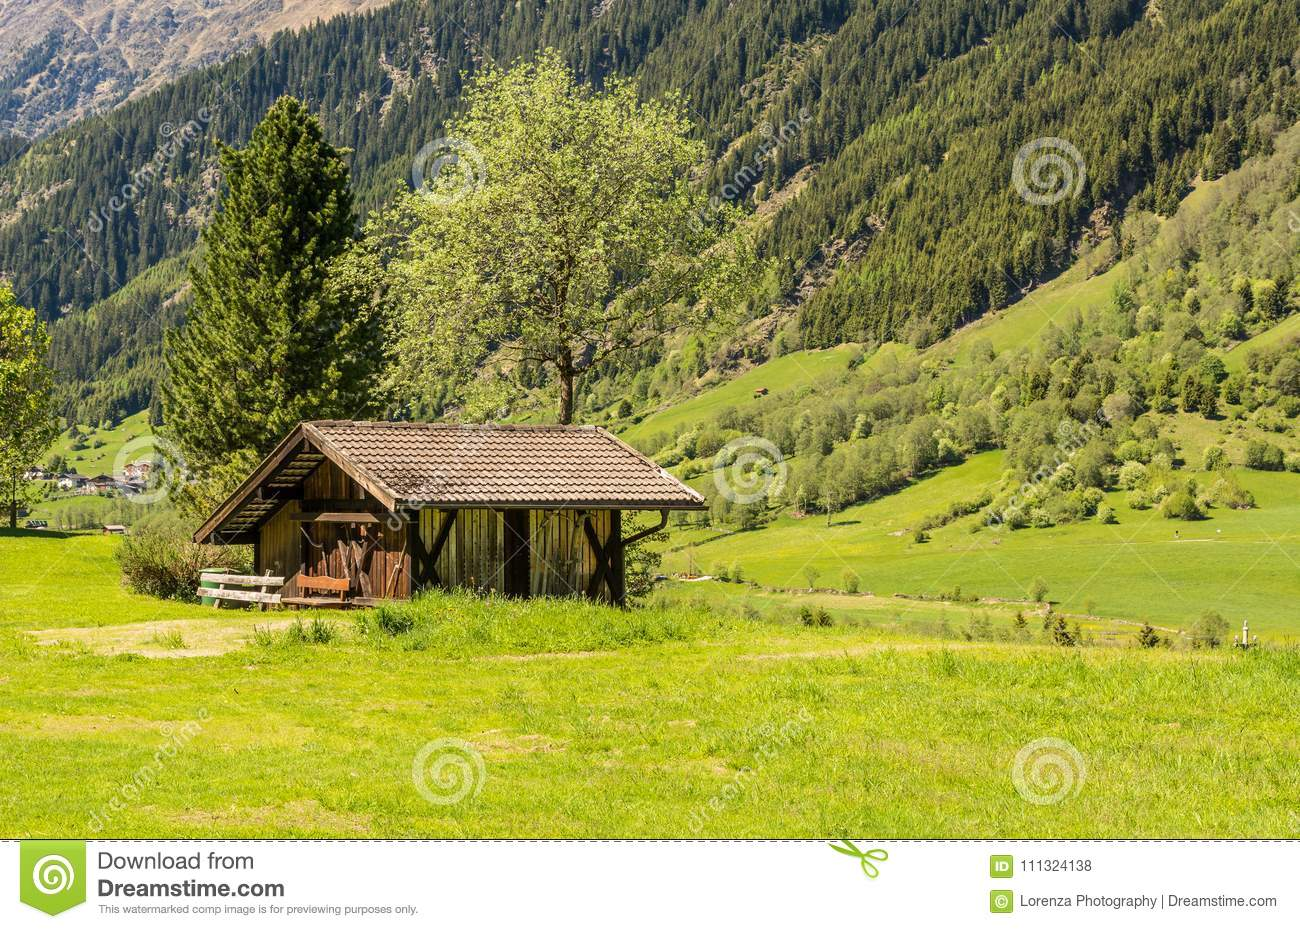 Wooden house typical in a alps village on Ridnaun Valley/Ridanna Valley - Racines country - near Sterzing/Vipiteno, South Tyrol, n